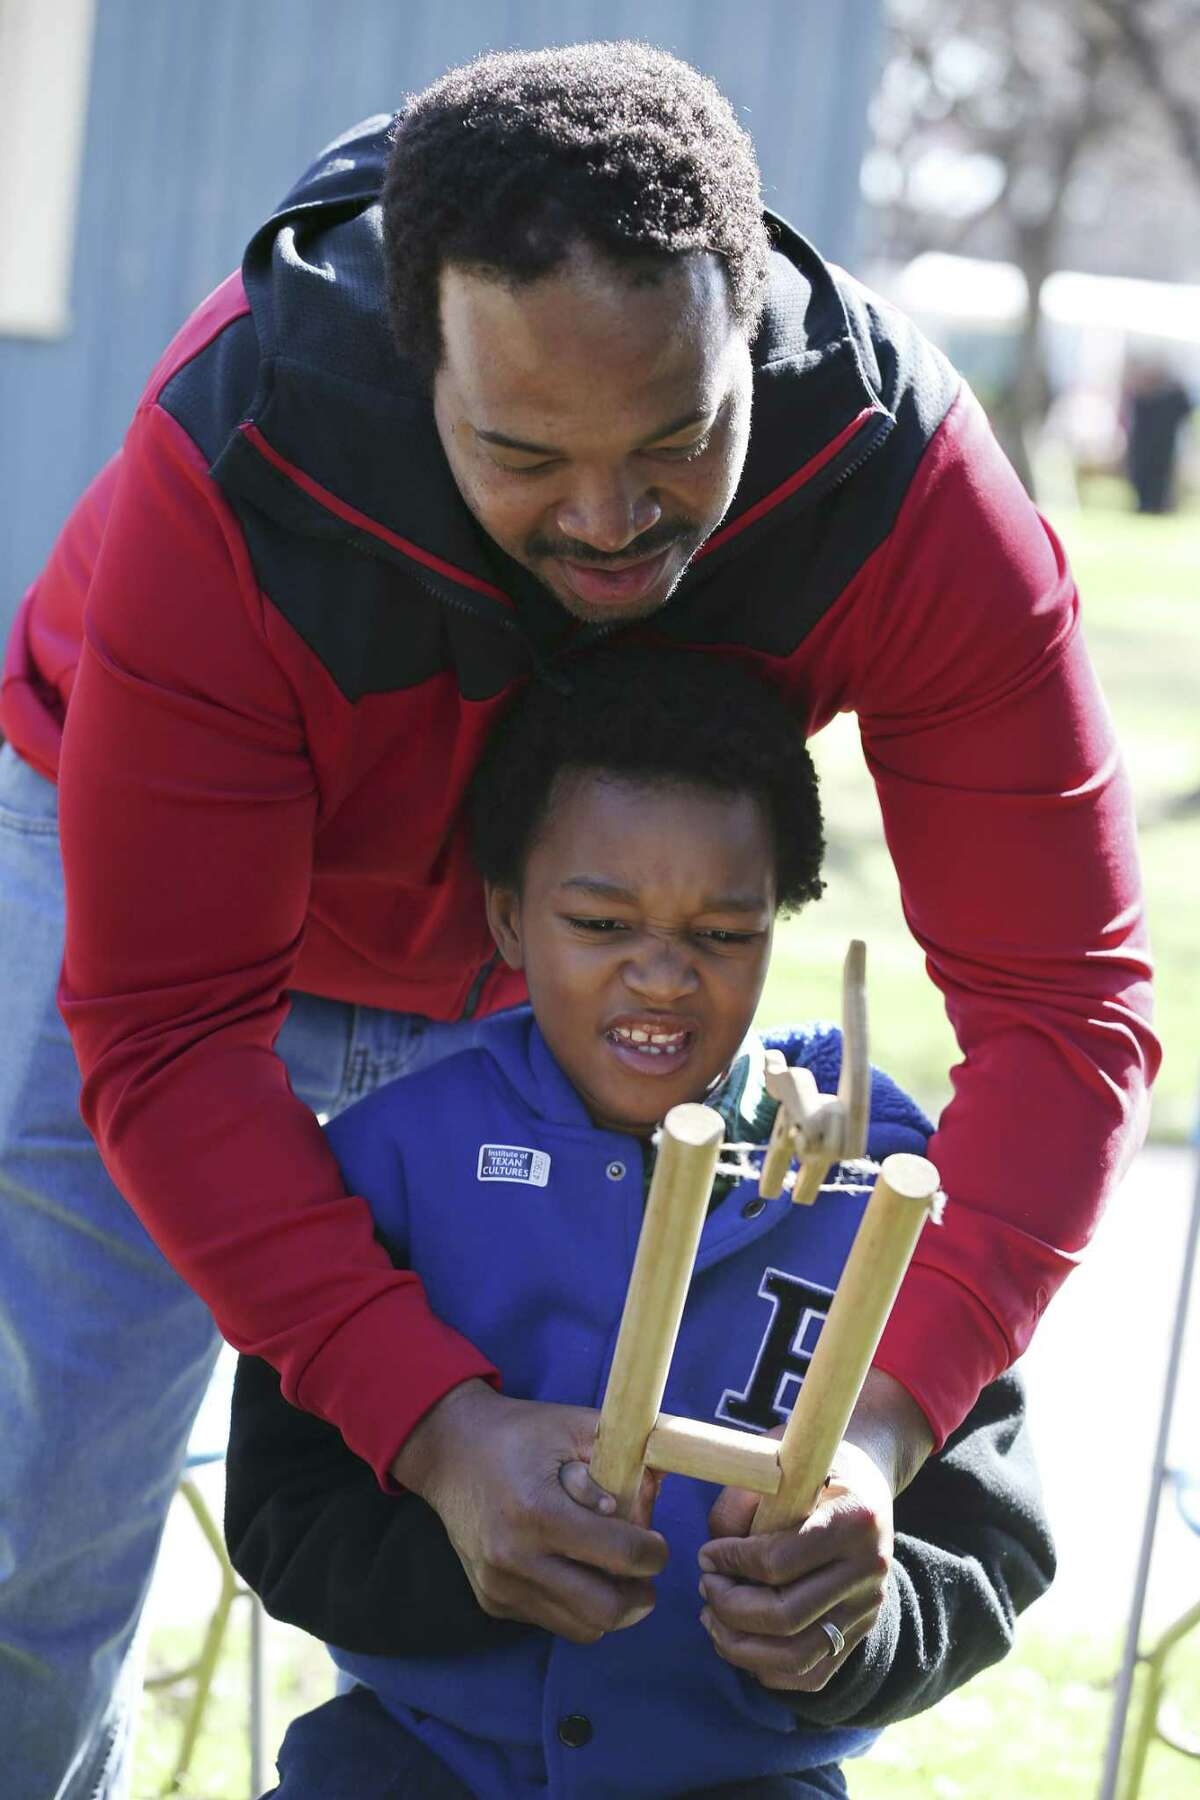 Julius William helps his son, Brennyn, 8, play with a handmade toy during Buffalo Soldier Day at the University of Texas at San Antonio Institute of Texan Cultures, Sunday, Jan. 13, 2019. The event was part of DreamWeek.